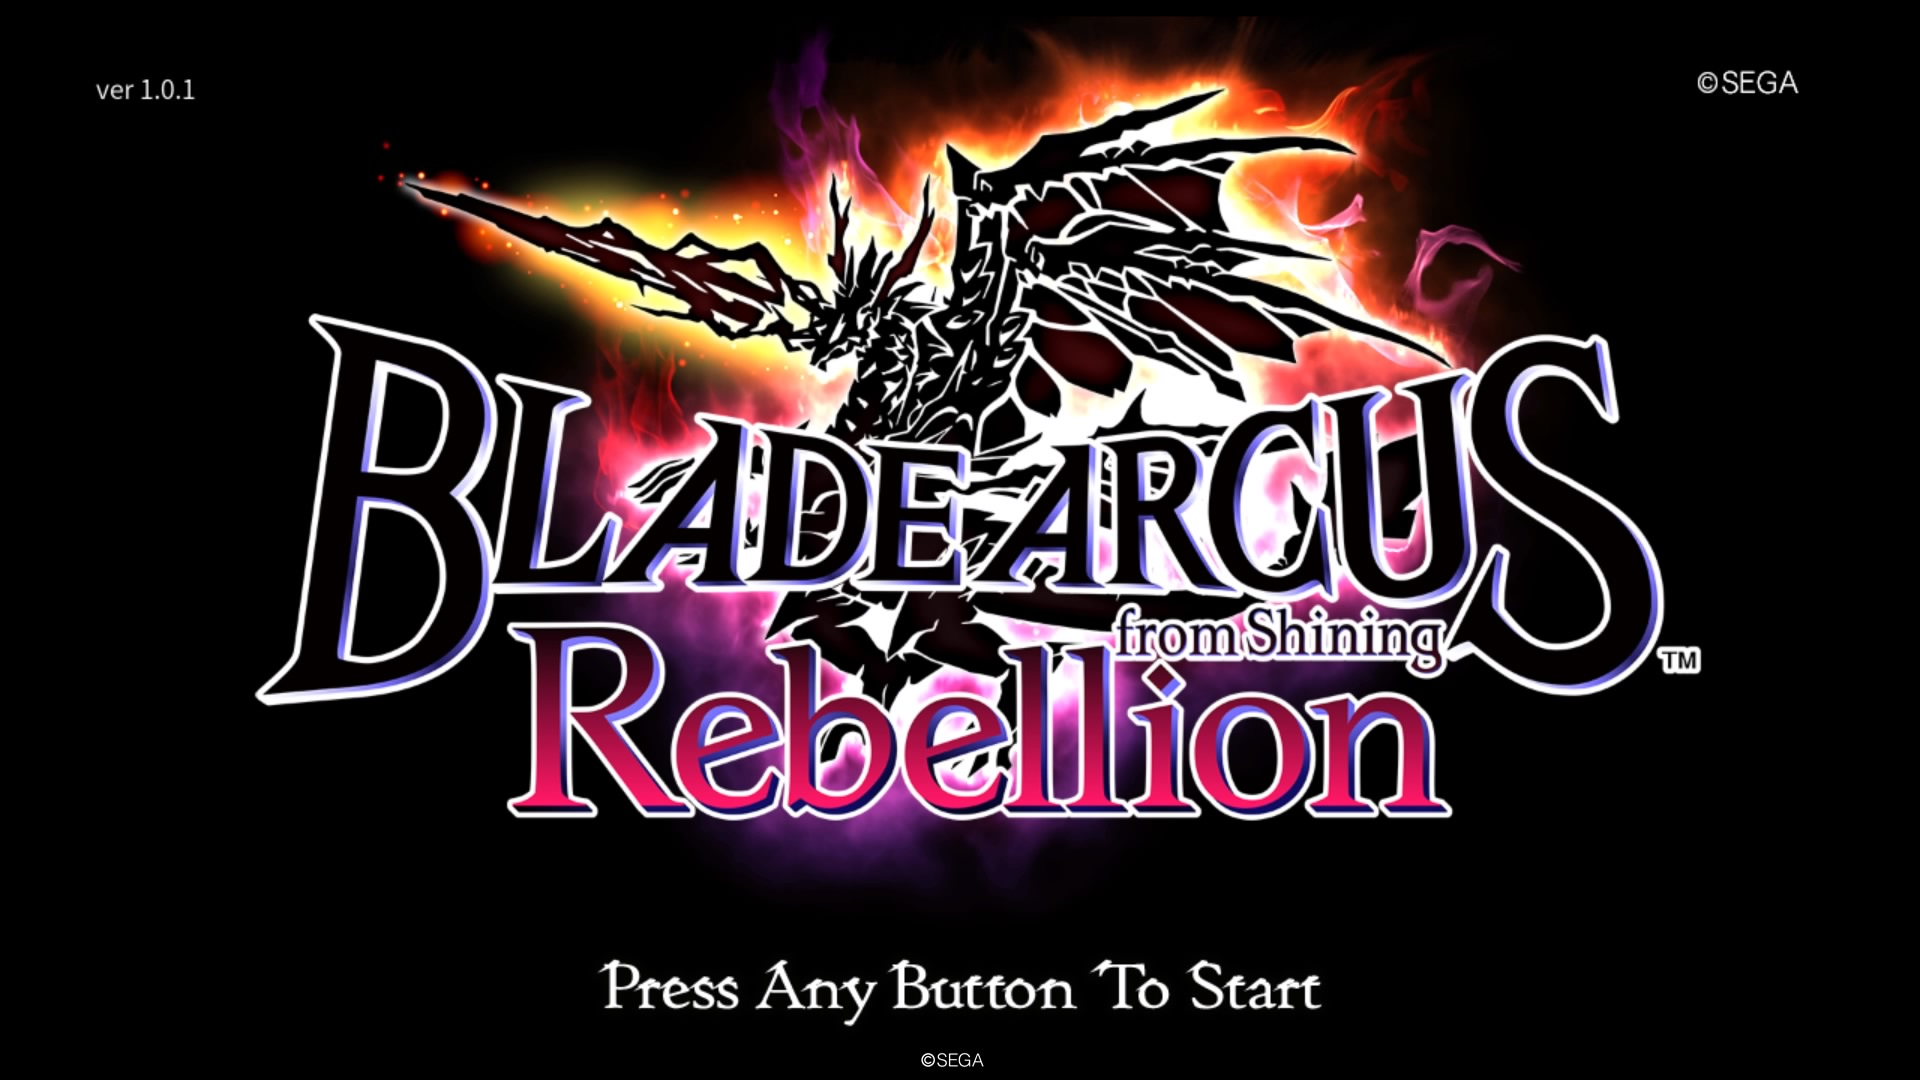 BLADEARCUS Rebellion from shining(PS4)感想・レビュー